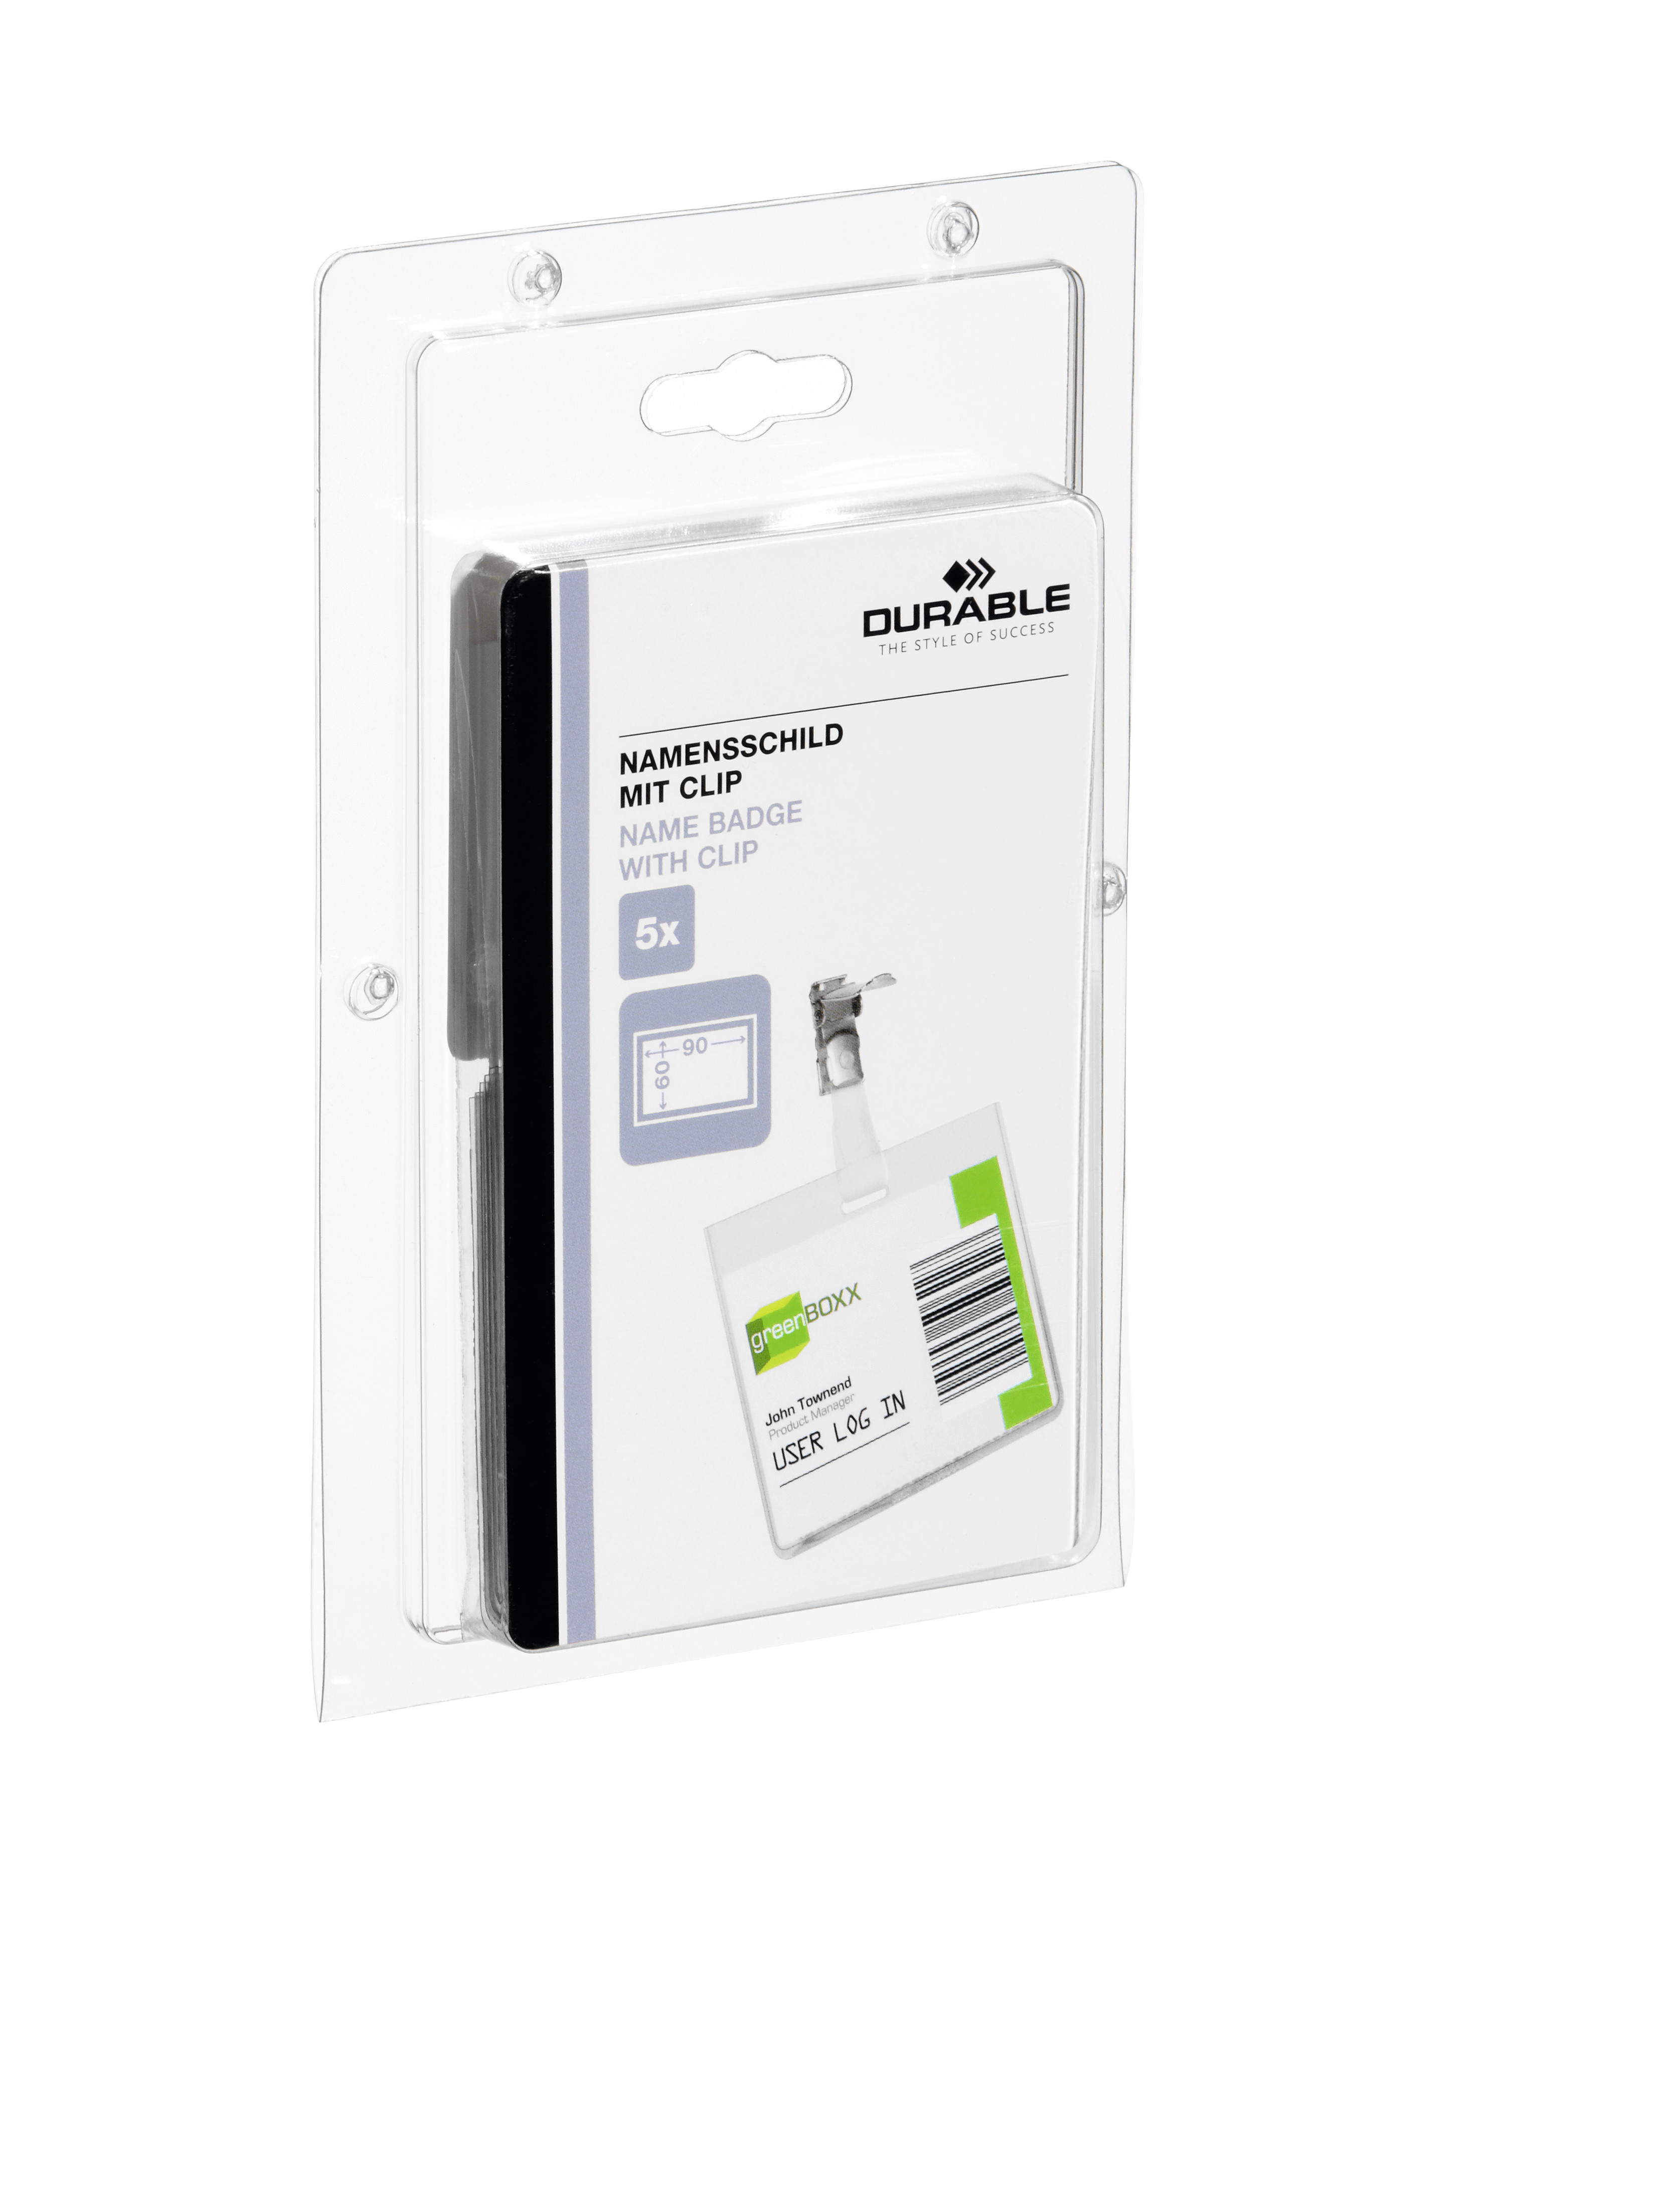 DURABLE NAMENSSCHILD MIT CLIP 1 PAK Z860399